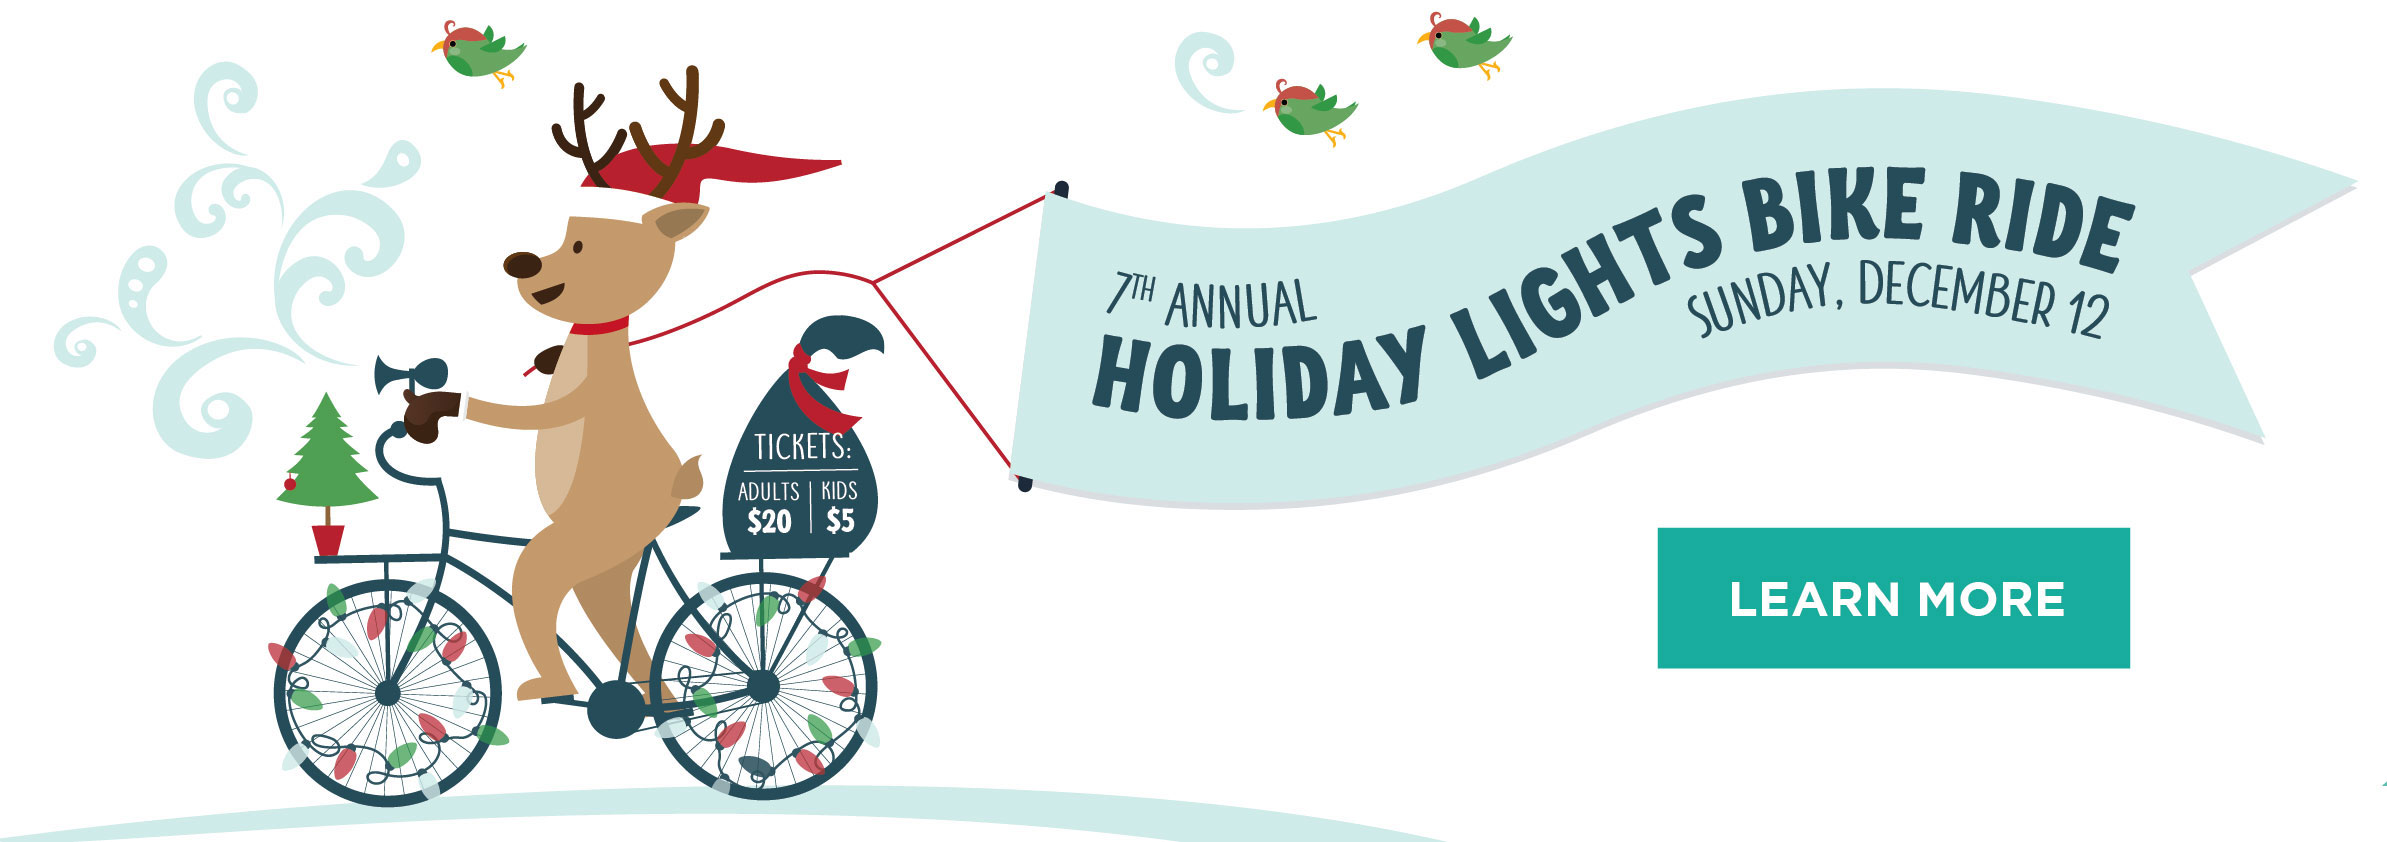 7th Annual Holiday Lights Bike Ride: Sunday, December 12th. Learn More